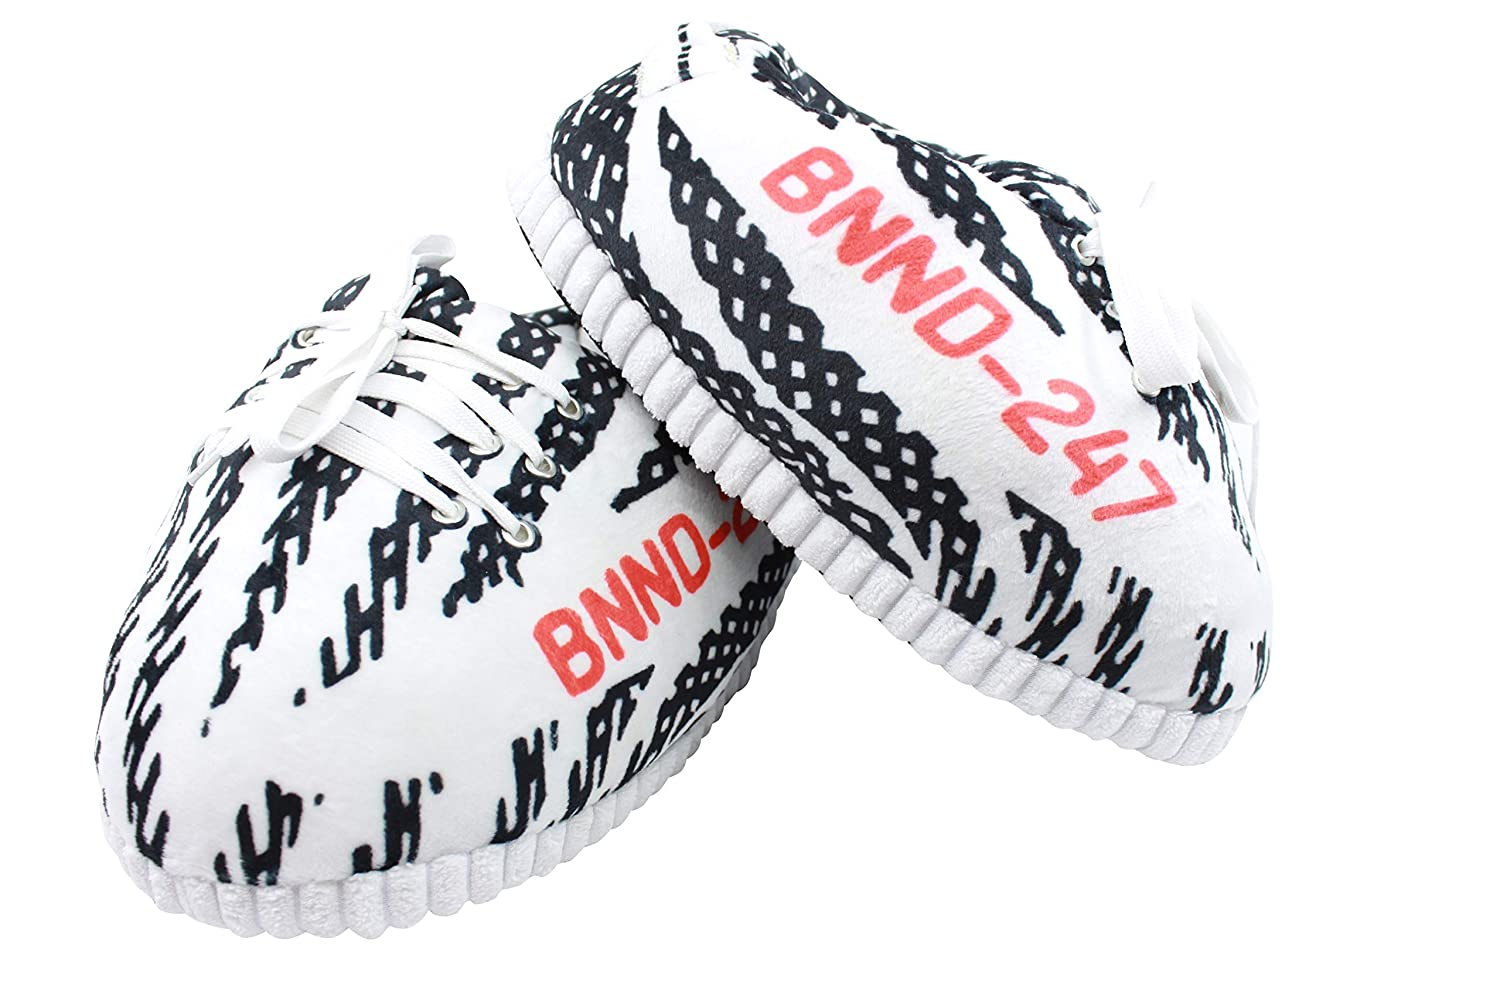 meet 42855 c0b8d SoleSlip ZBRA Sneaker Slippers | Men and Women | Comfy and Cozy | Perfect  for Lounging | Pure Polyester | One Size Fits All | Trendy Design | White  ...